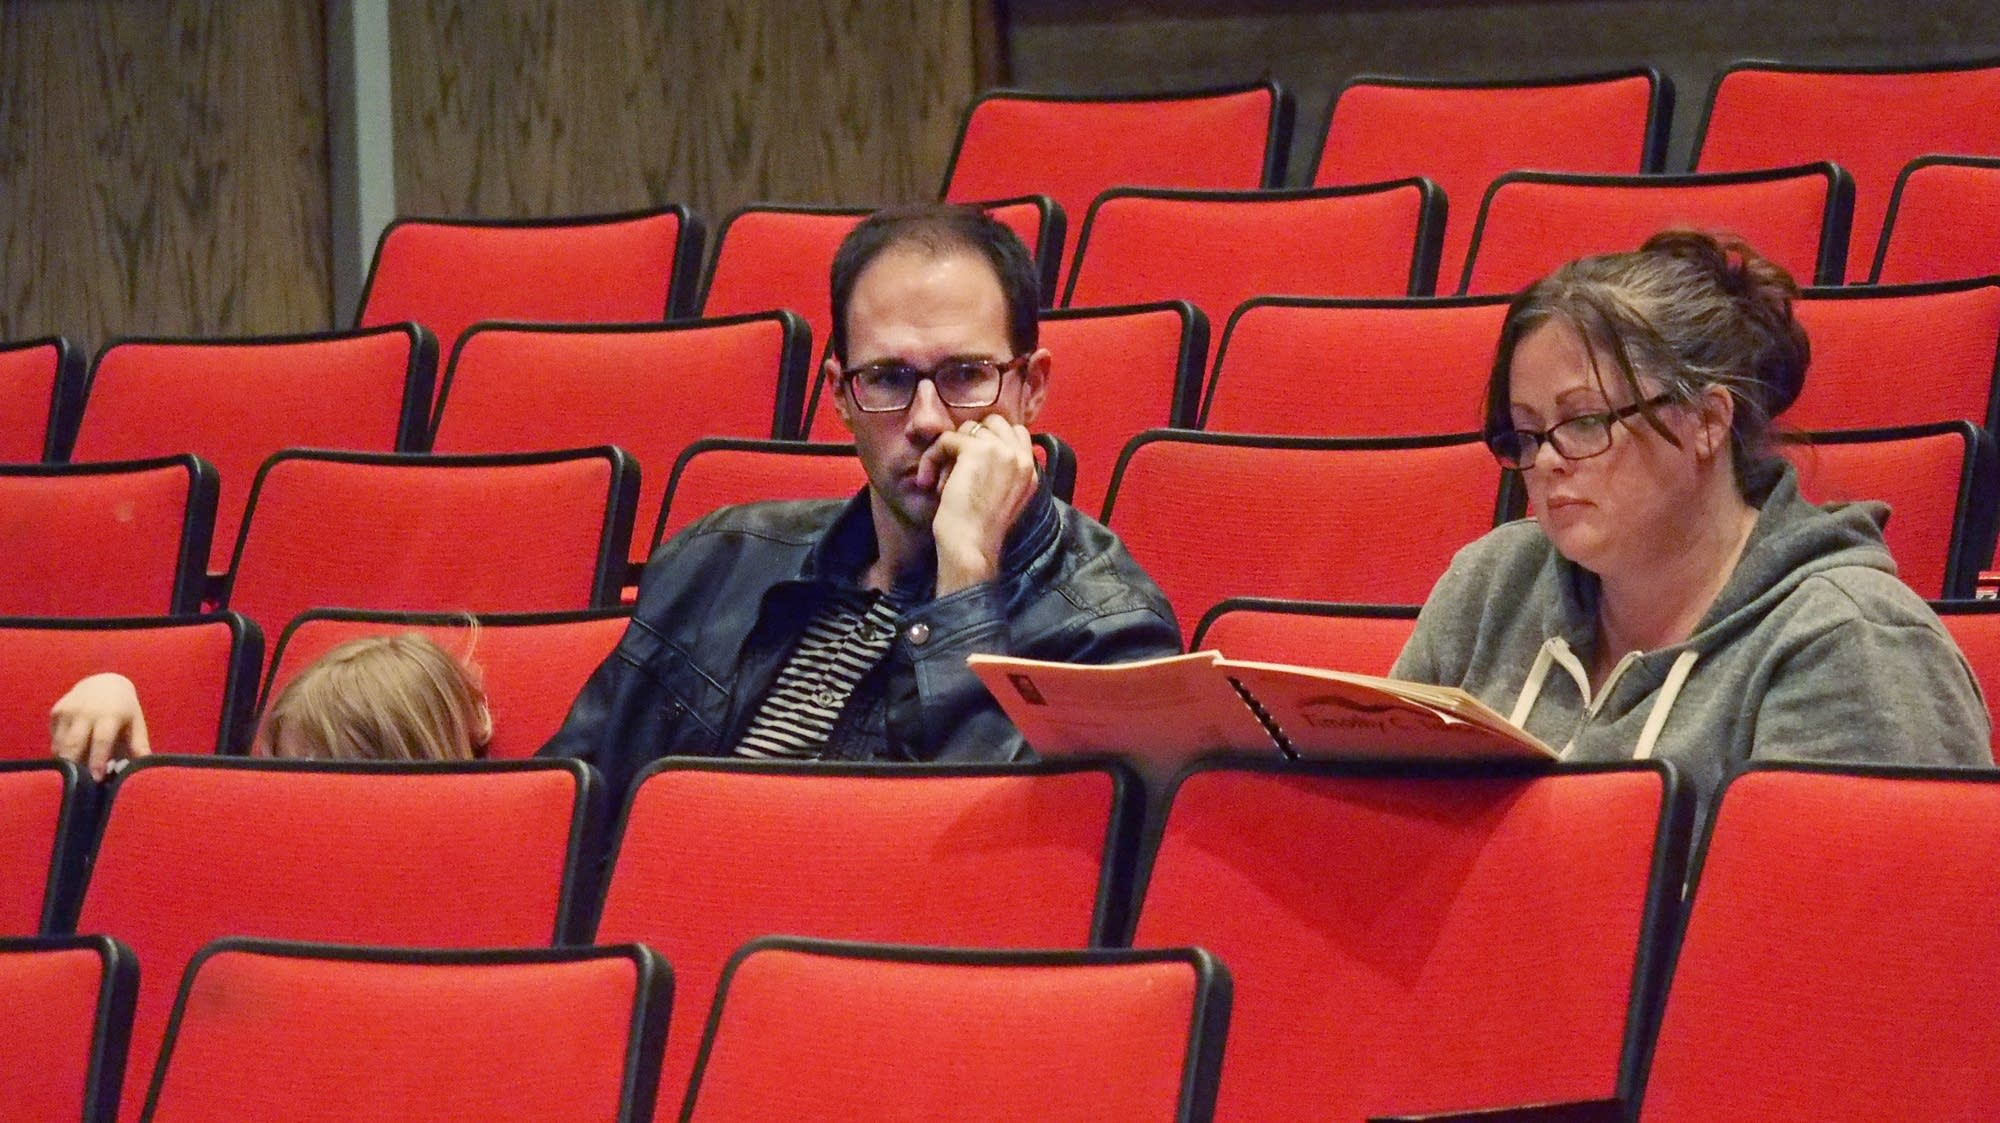 Composer Tim Takach and spoken word artist Desdamona listen.